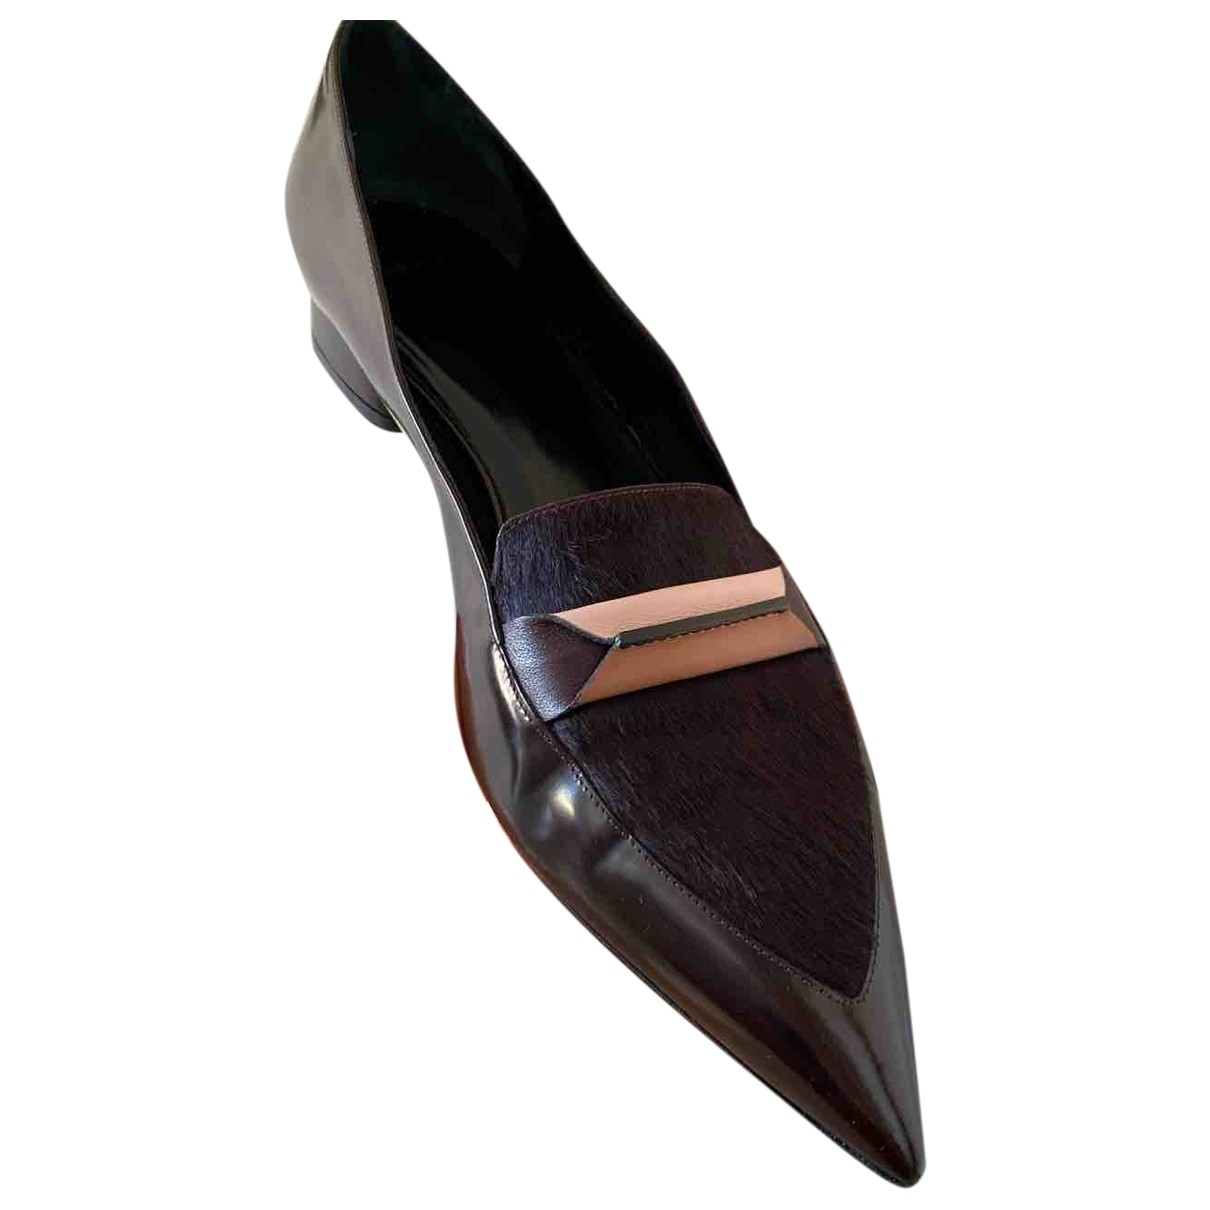 Paul Smith \N Burgundy Patent leather Ballet flats for Women 7 UK